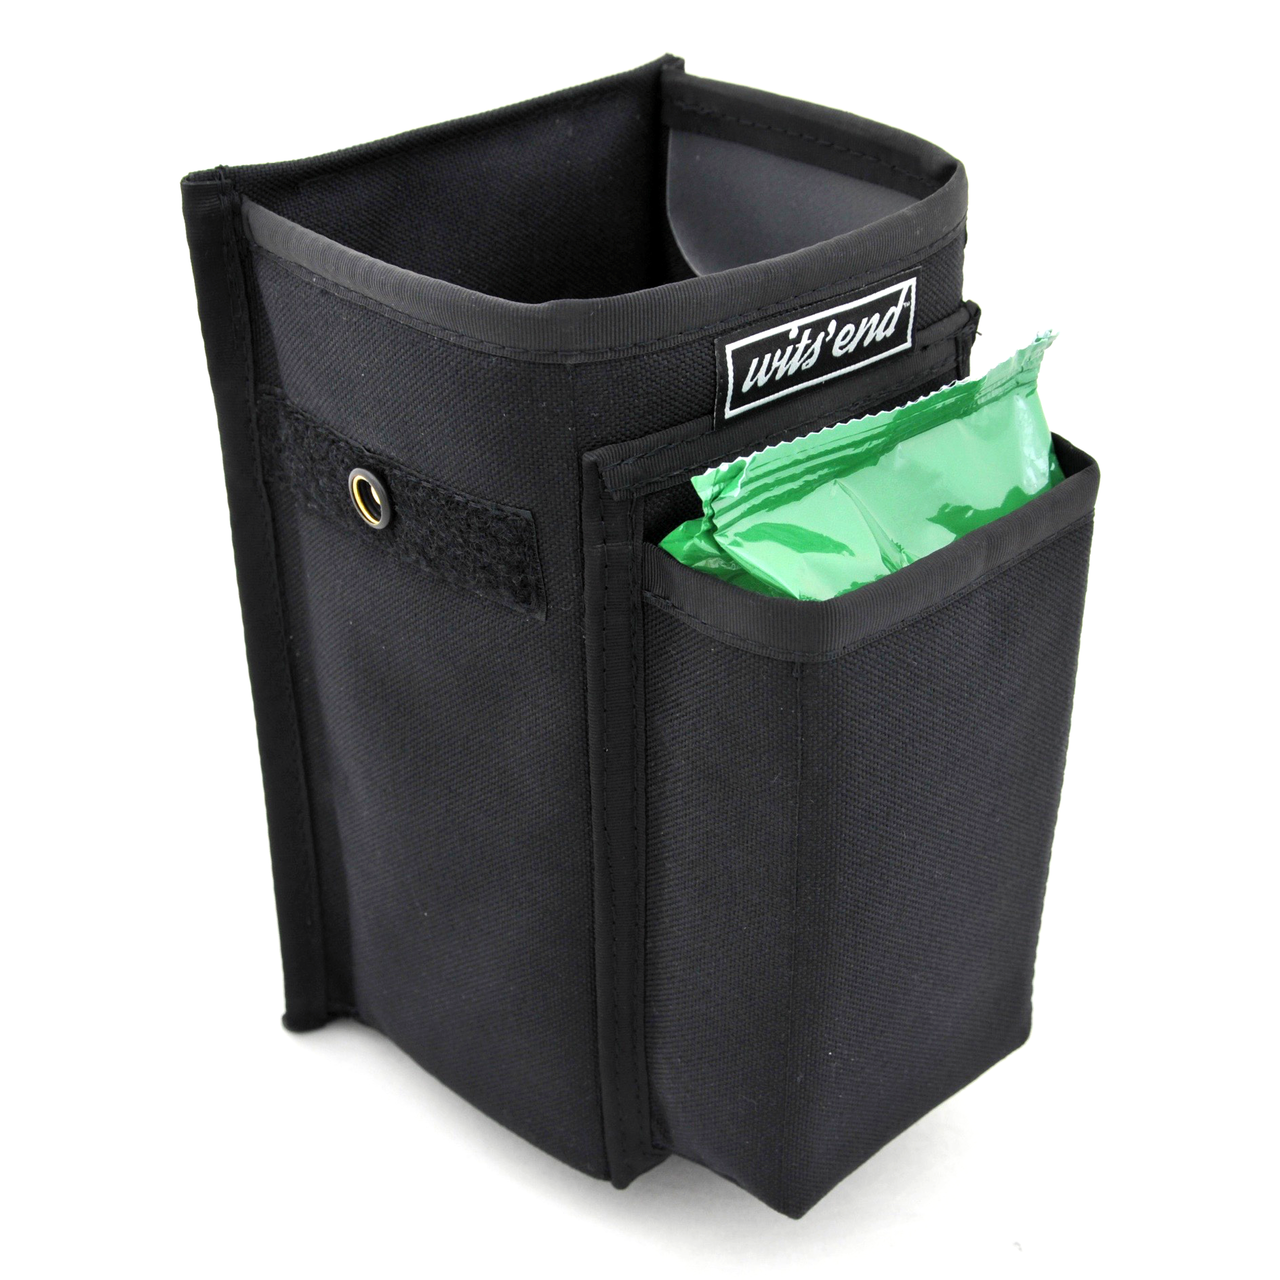 Refuse Containment System- Main Unit (RCS-1) Front pocket designed to hold a small pack of wet wipes.